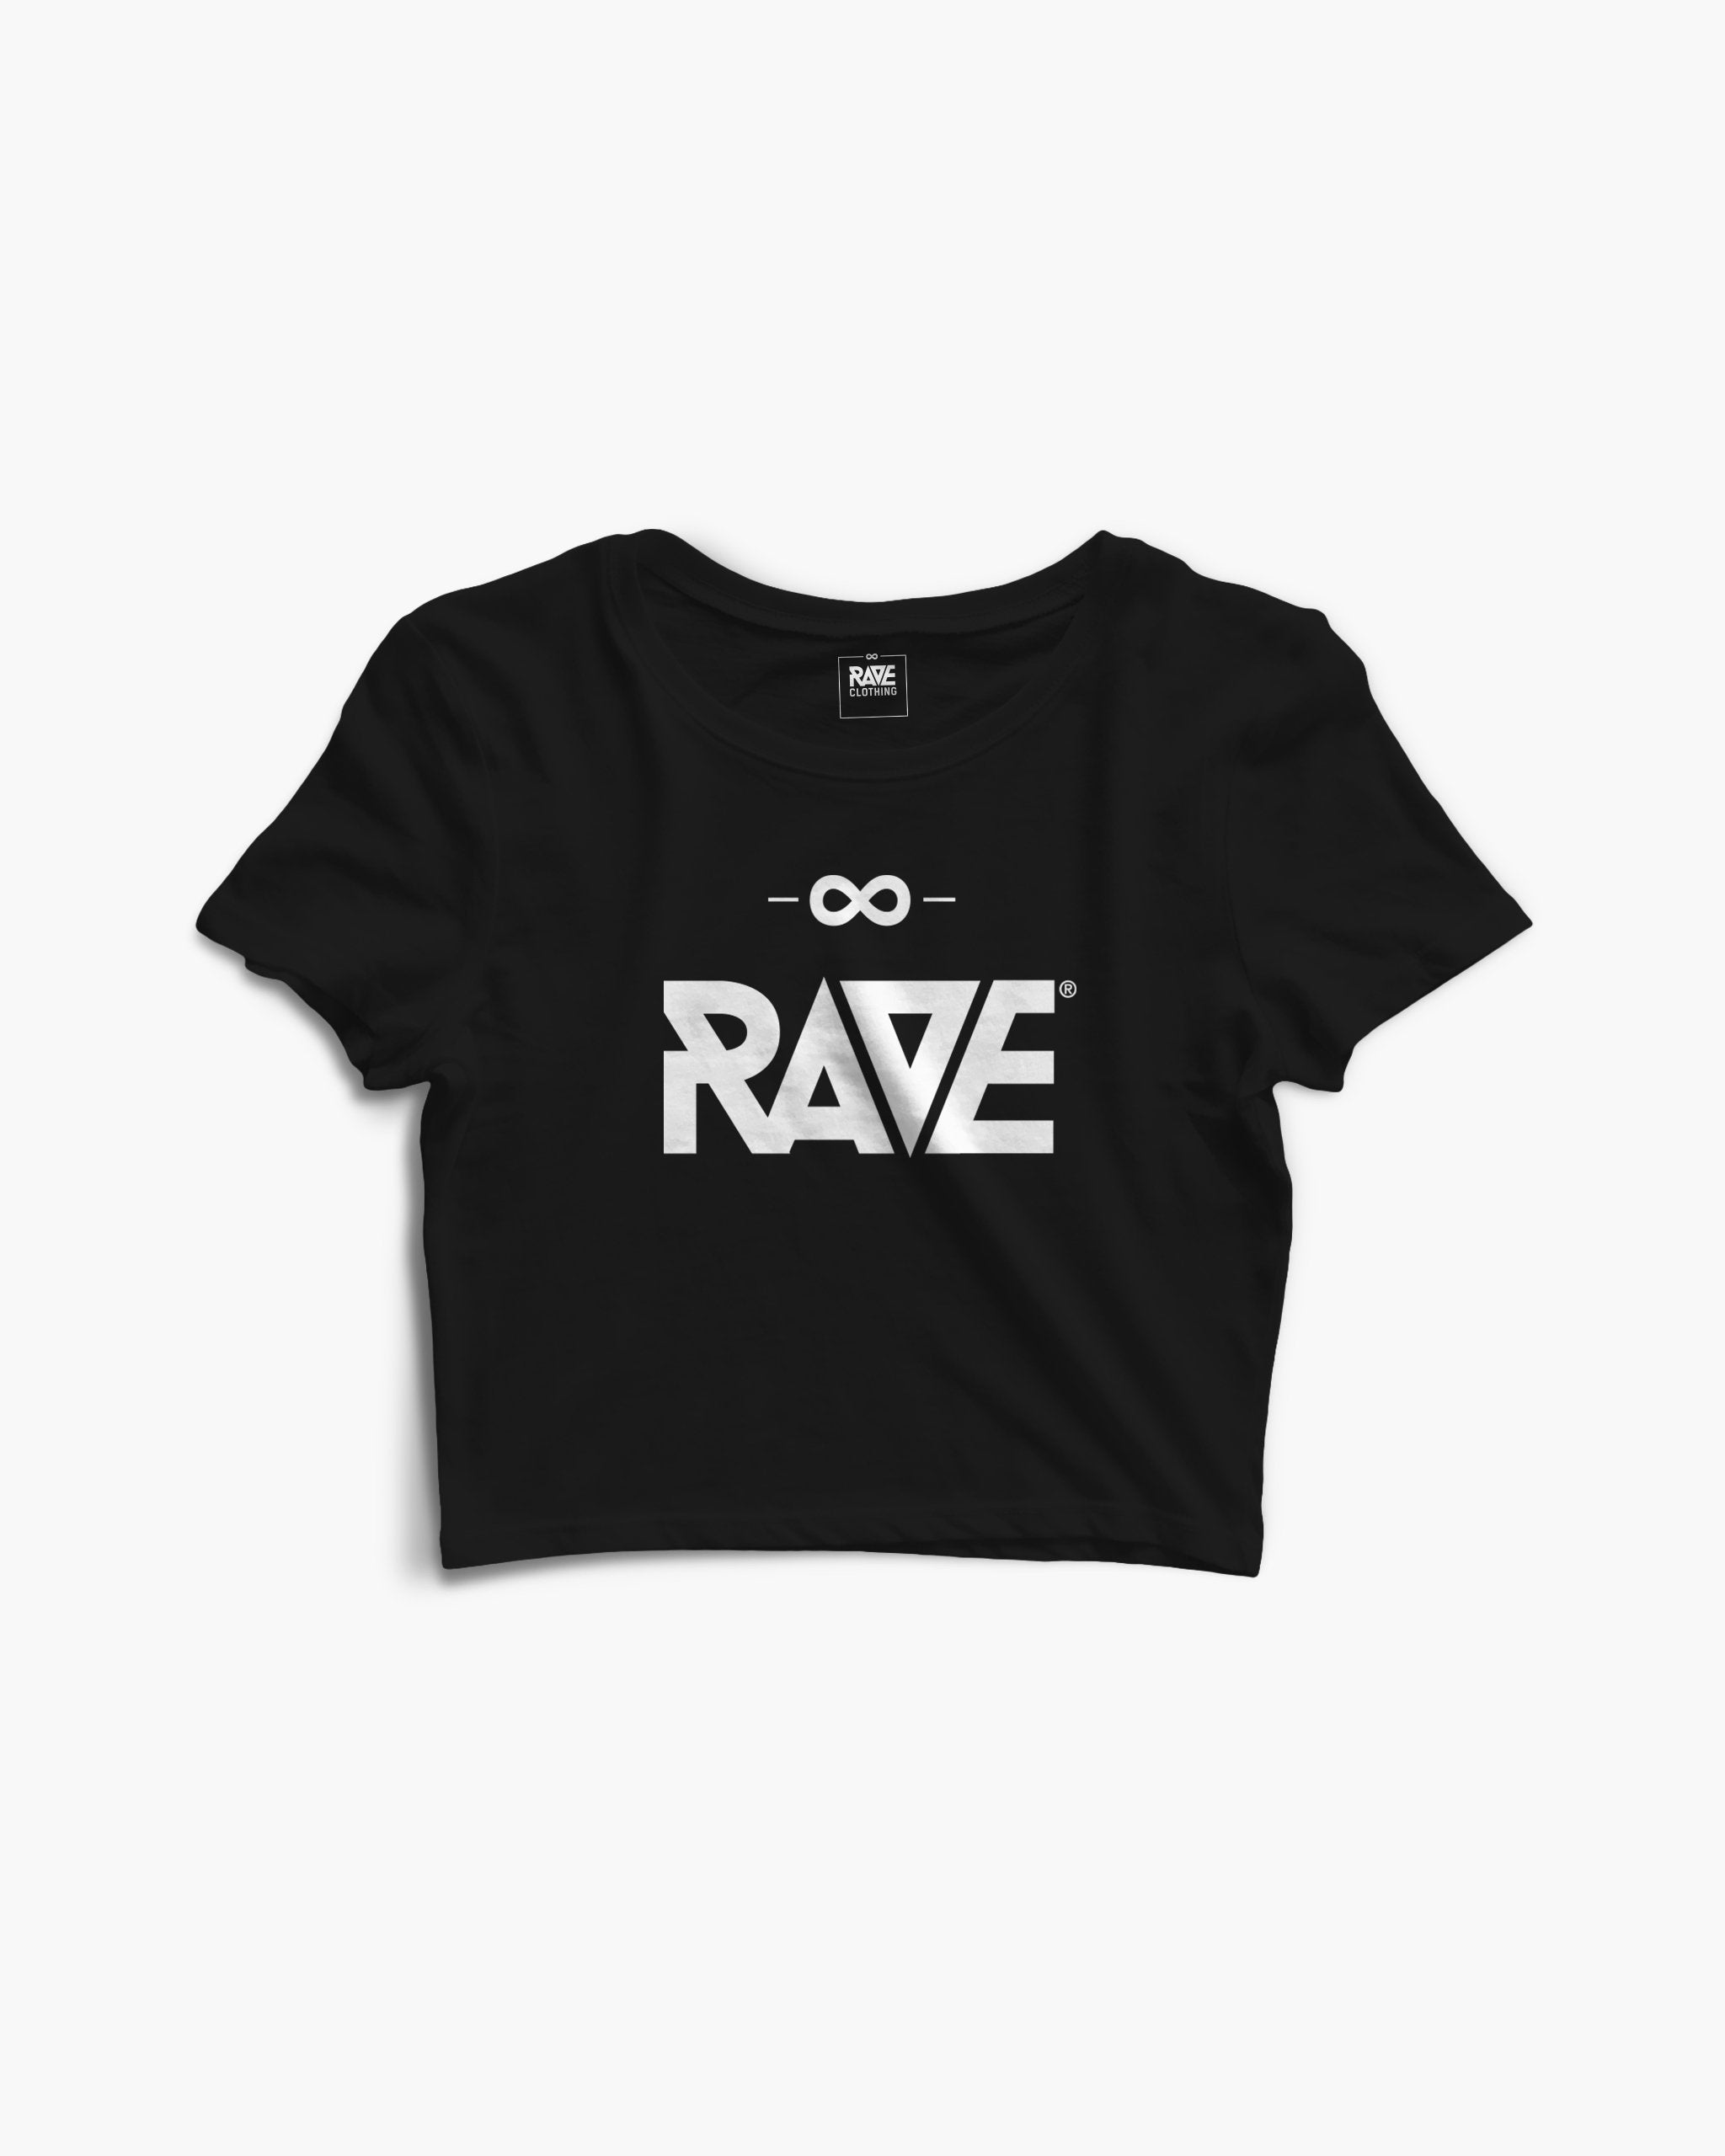 RAVE Crop Top in black for women by RAVE Clothing